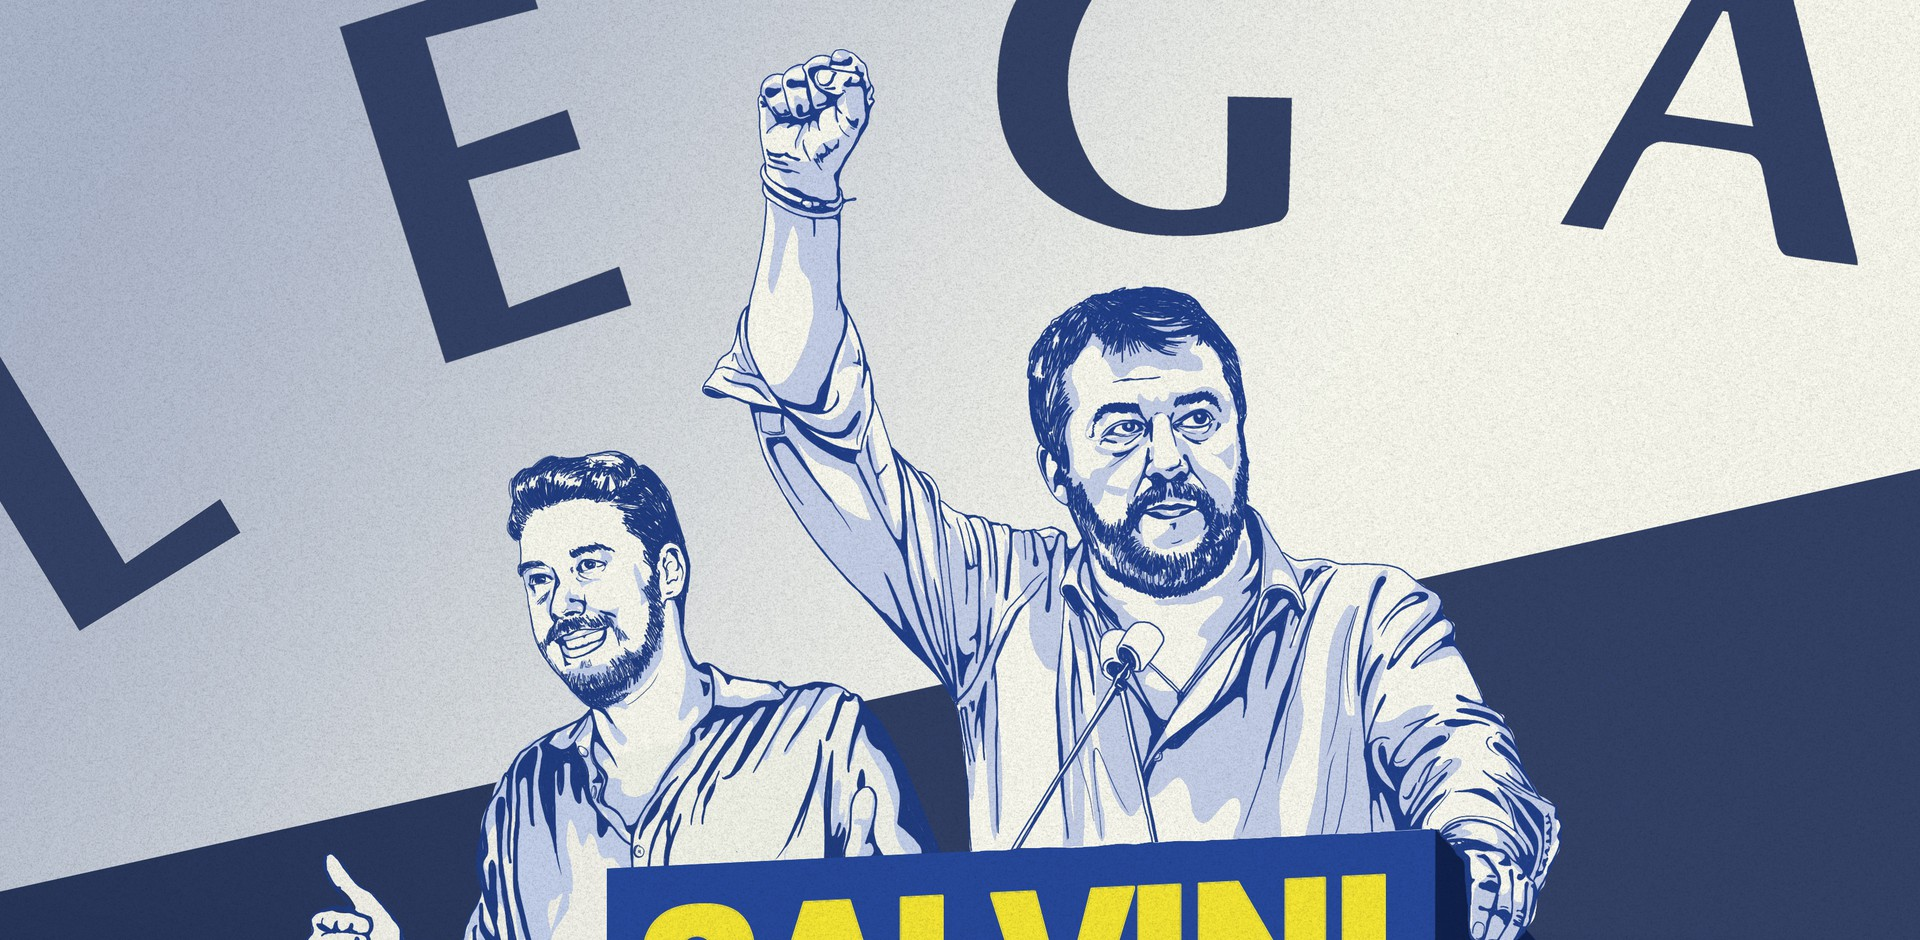 An illustration of Matteo Salvini and Luca Tocallini standing behind a lectern and in front of their party's flag.